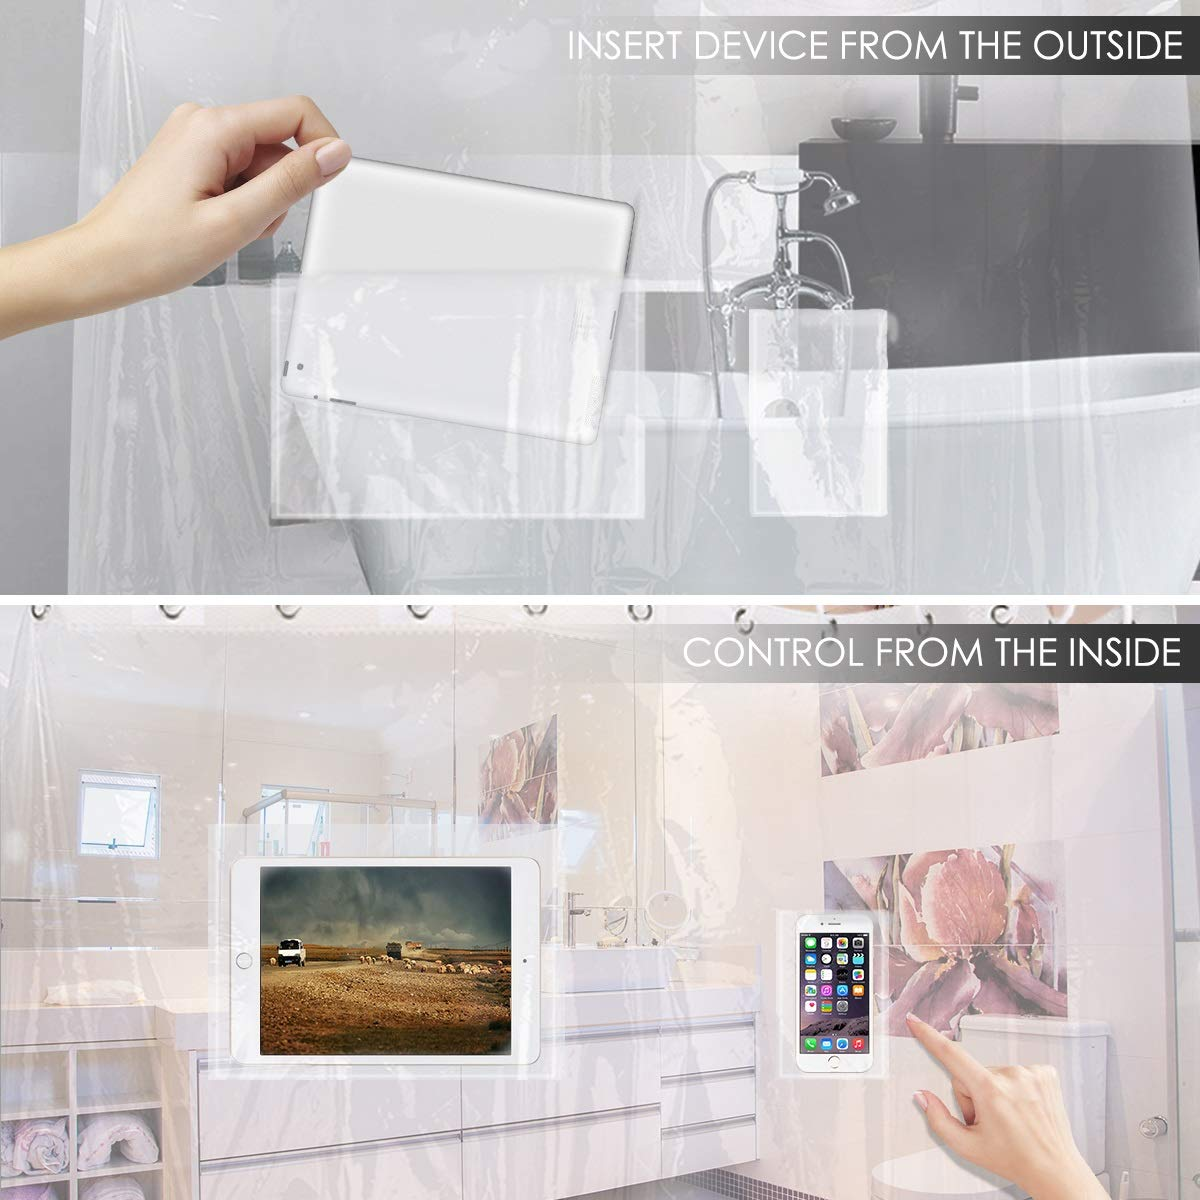 Xingny Waterproof Phone Case Dry Bag Pouch 8-Pocket Phone Holder Transparent Shower Curtain Waterproof Phone Pocket with High//Low Slots